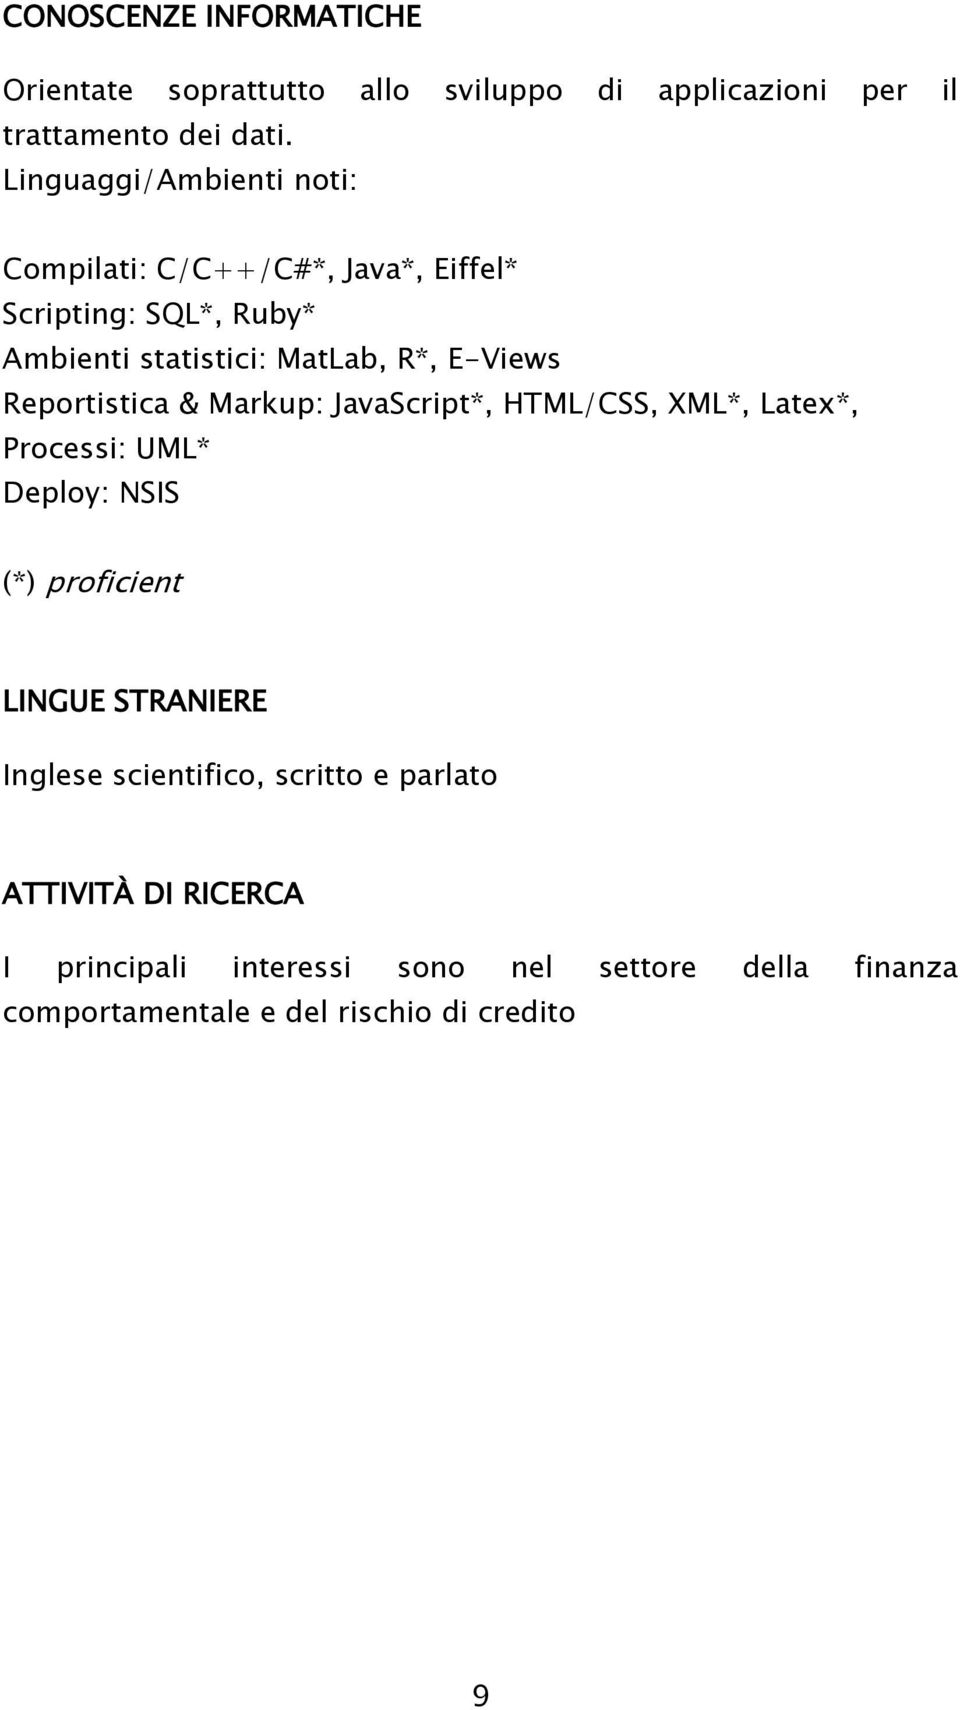 Reportistica & Markup: JavaScript*, HTML/CSS, XML*, Latex*, Processi: UML* Deploy: NSIS (*) proficient LINGUE STRANIERE